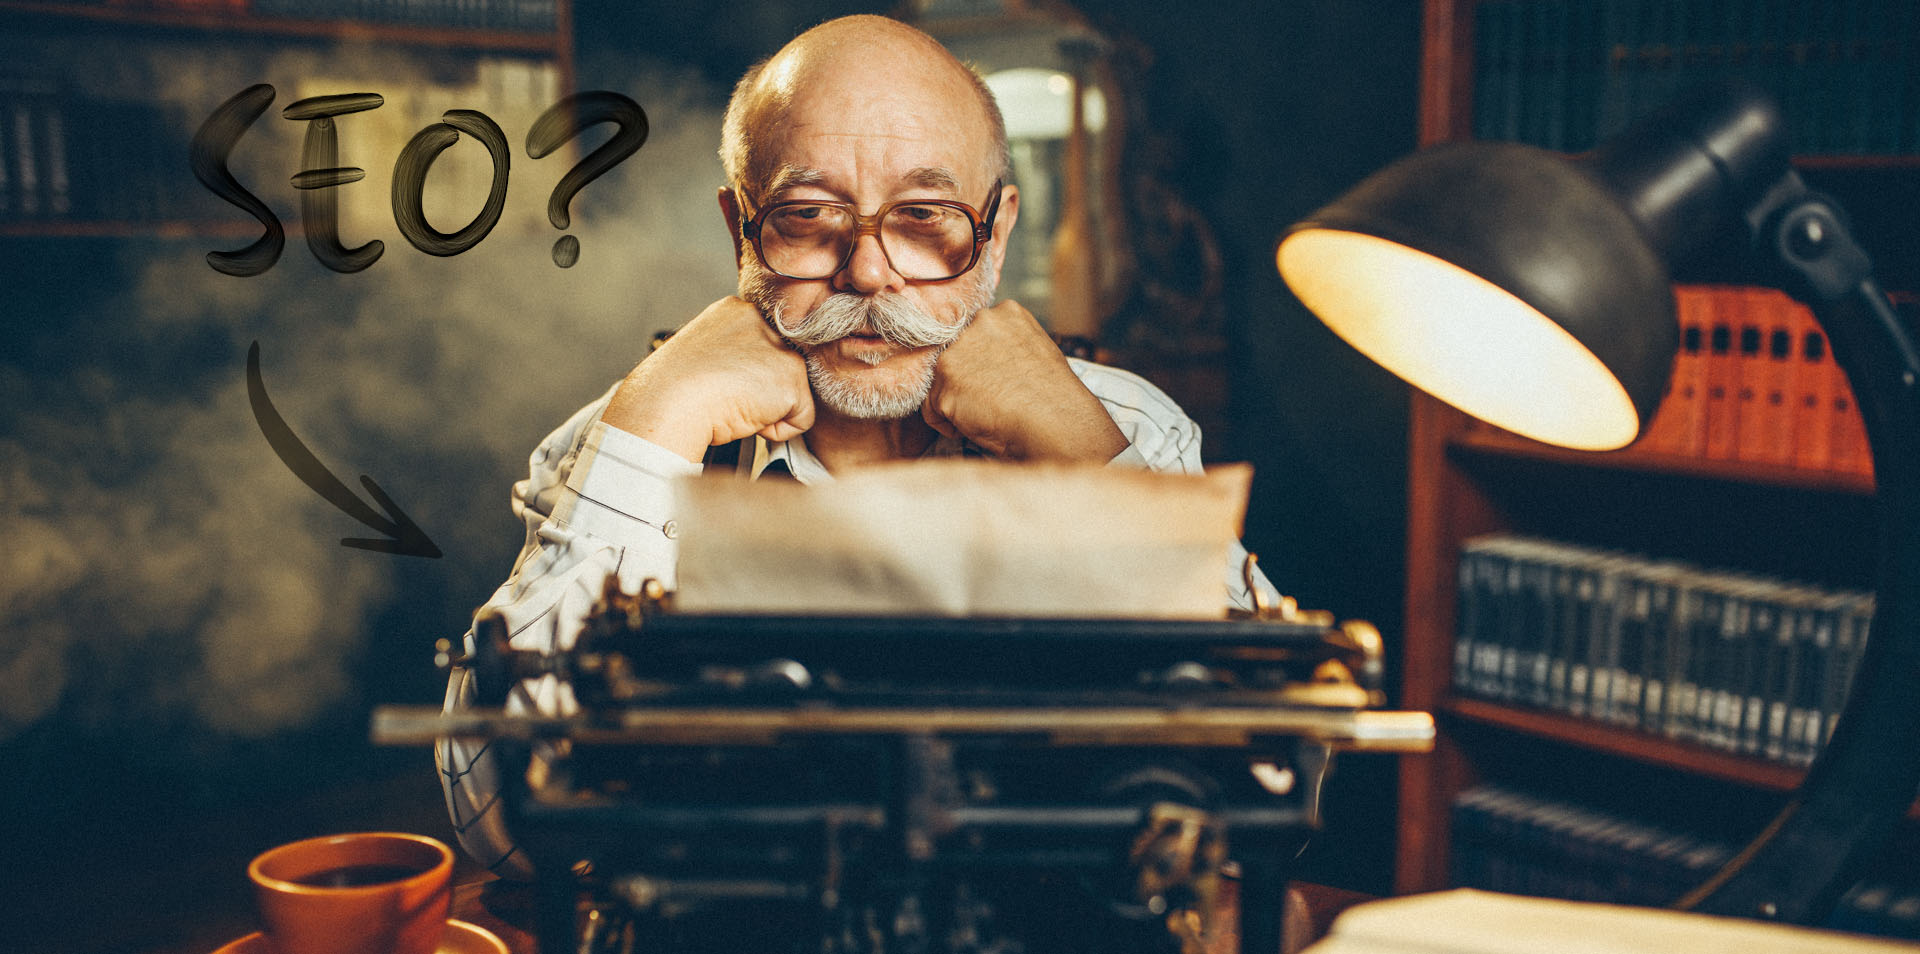 SEO for small businesses is like a grandfather